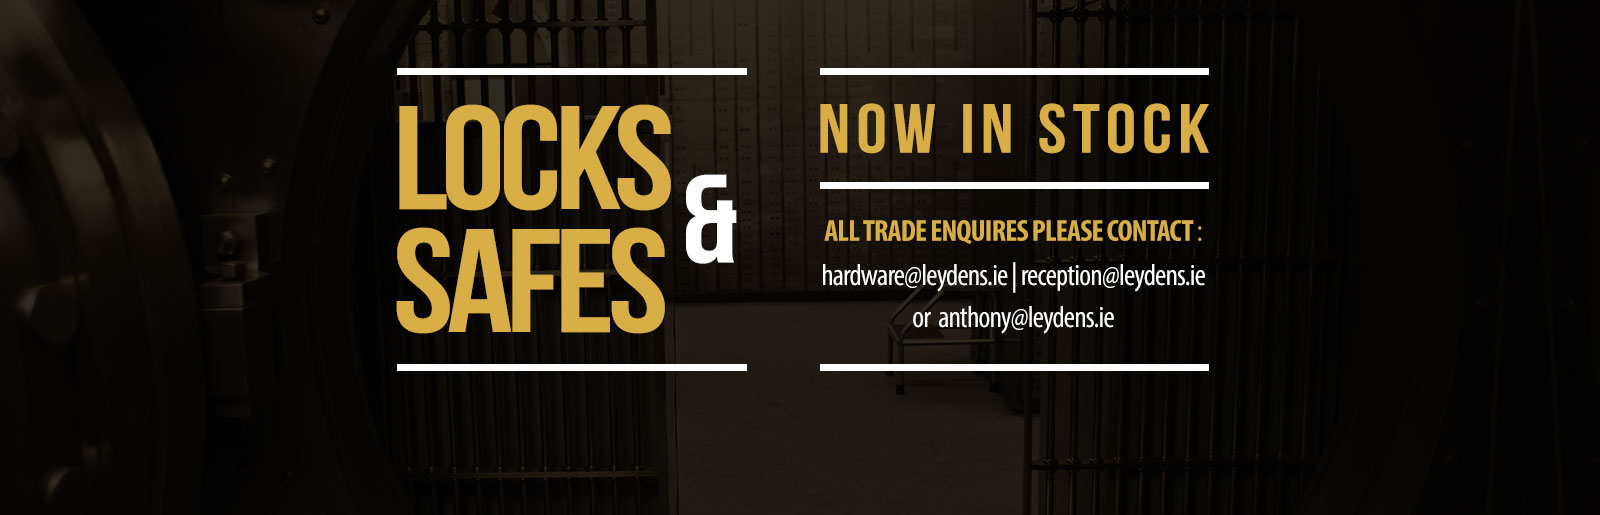 Safes-and-Locks-for-Valuables---Leydens-Trade-Wholesalers-Dublin-3